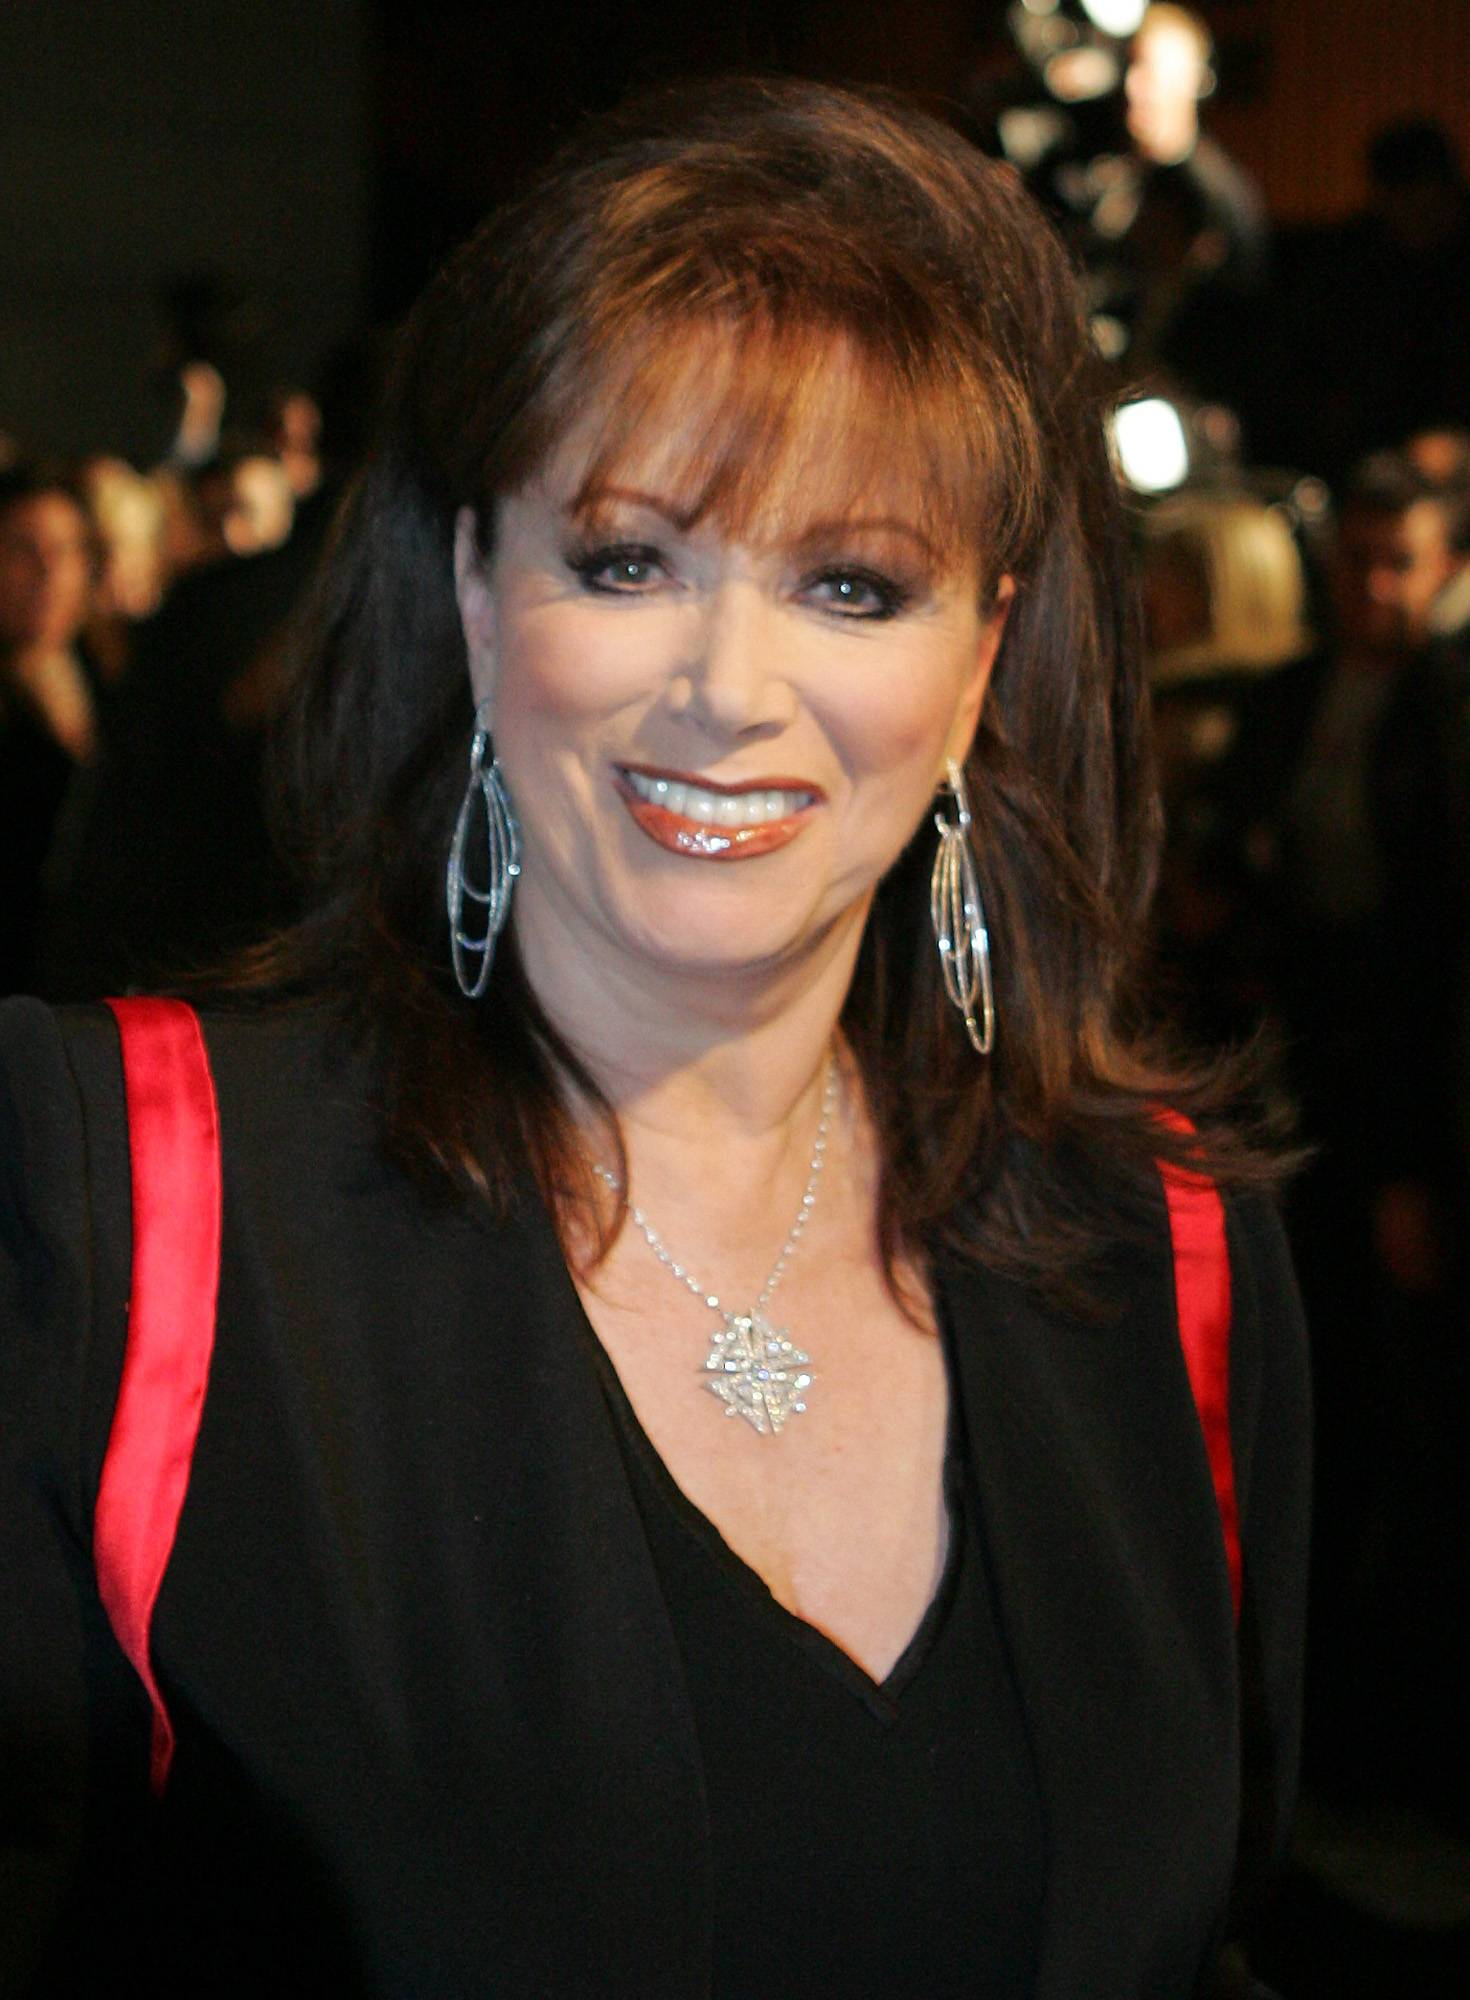 Best-selling author Jackie Collins is scheduled to be in Gurnee at 7 p.m. Wednesday at Warren-Newport Public Library on O'Plaine Road.